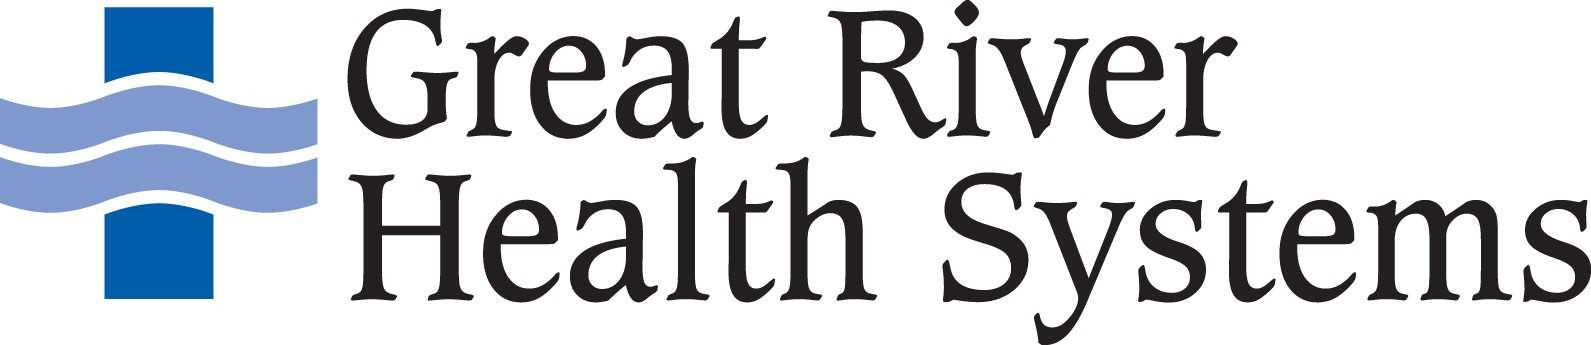 GReat River Health Systems